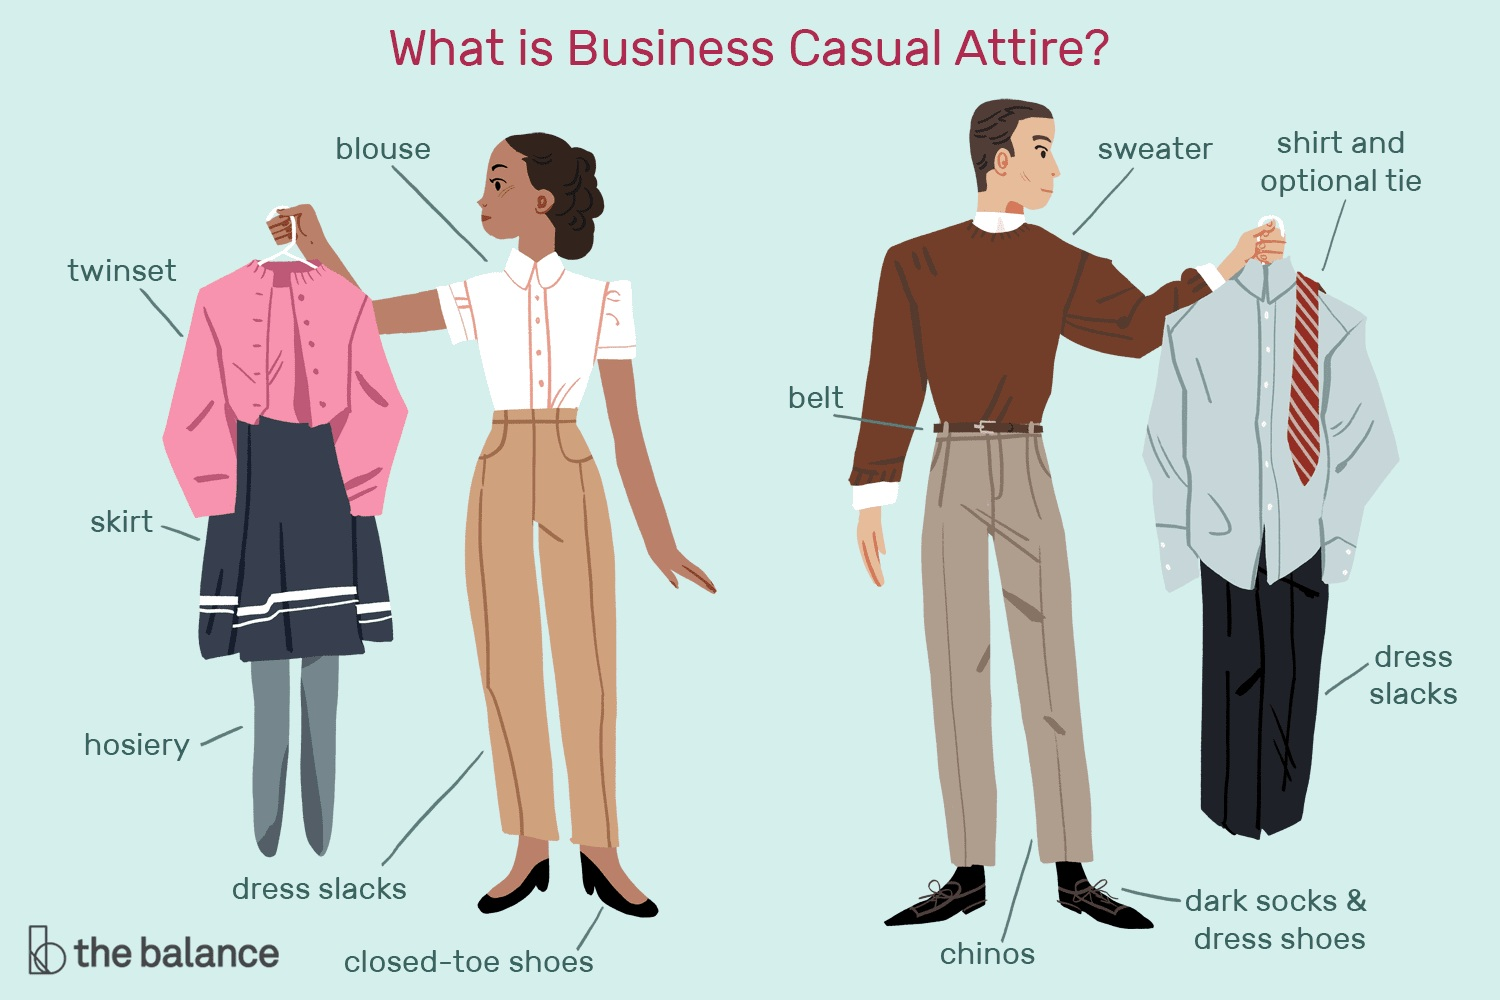 from  https://www.thebalancecareers.com/what-is-business-casual-attire-2061168